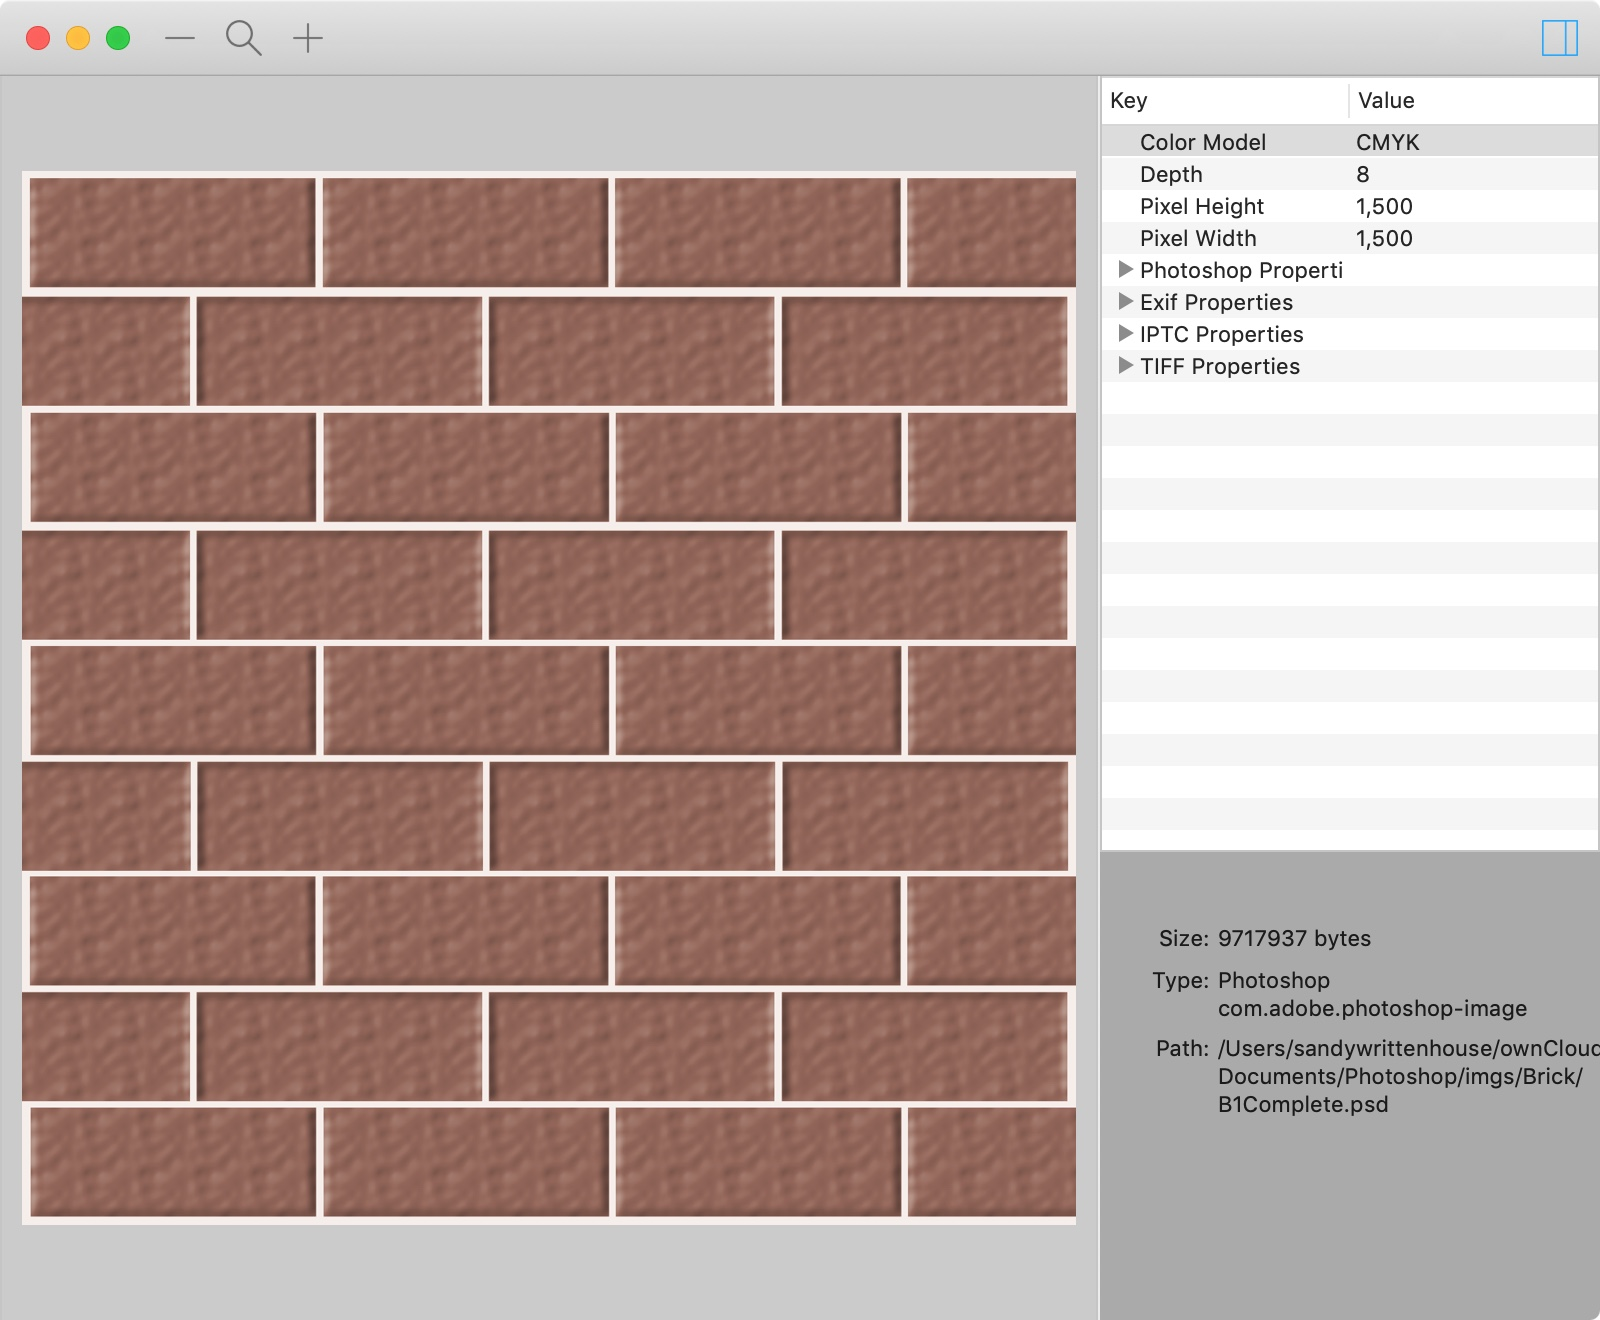 3 free and easy ways to view PSD files on Mac without Photoshop